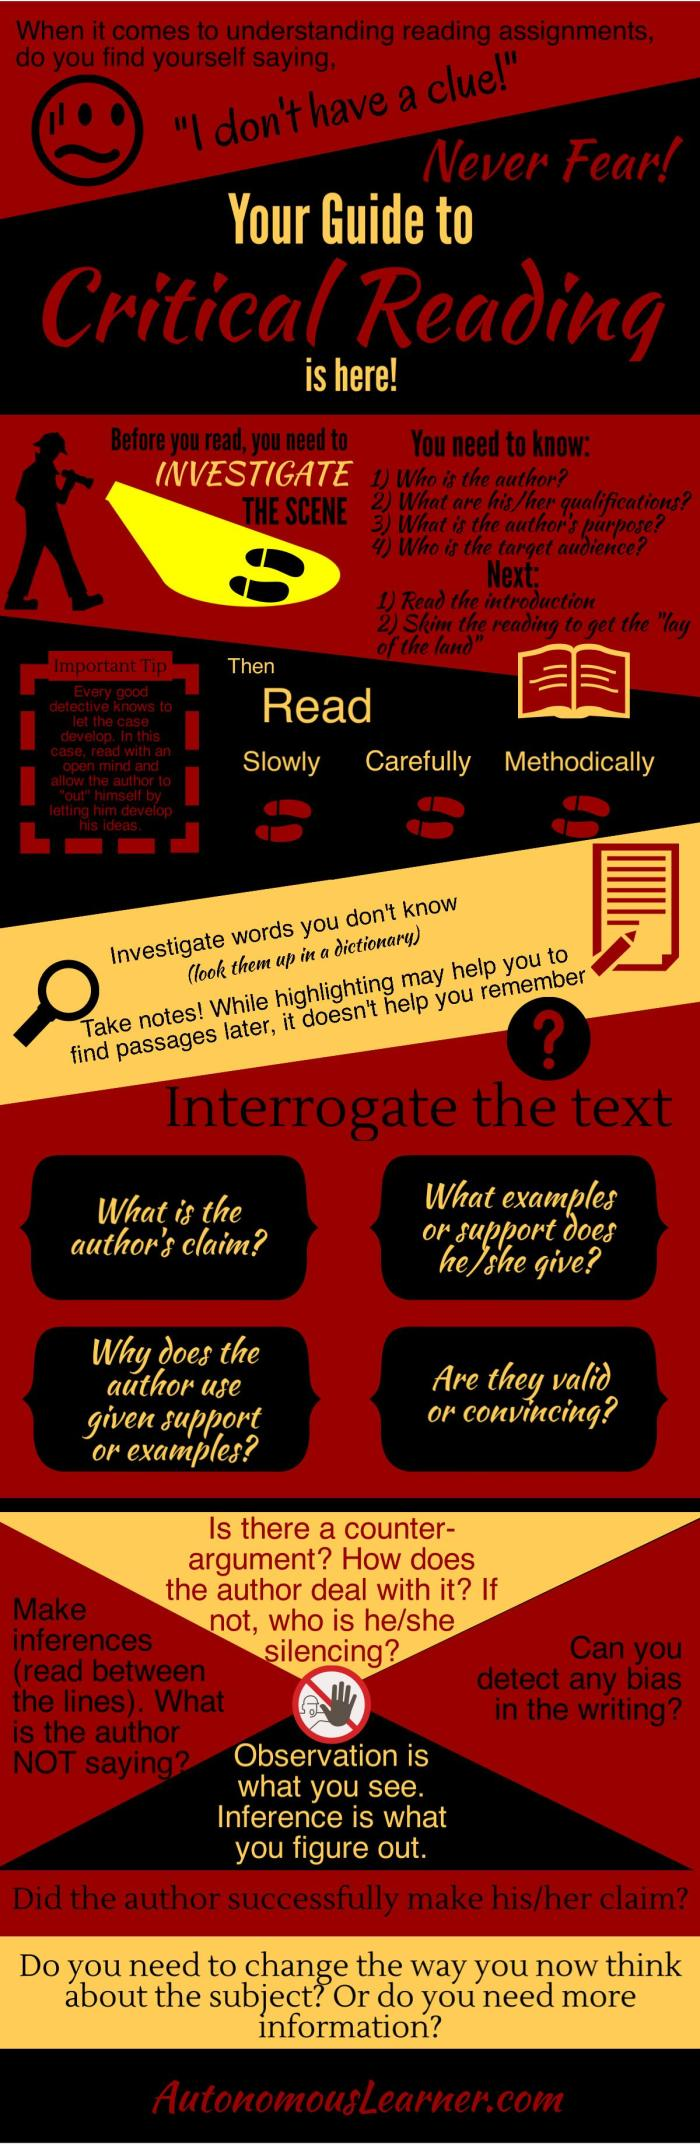 Critical Reading Infographic 2